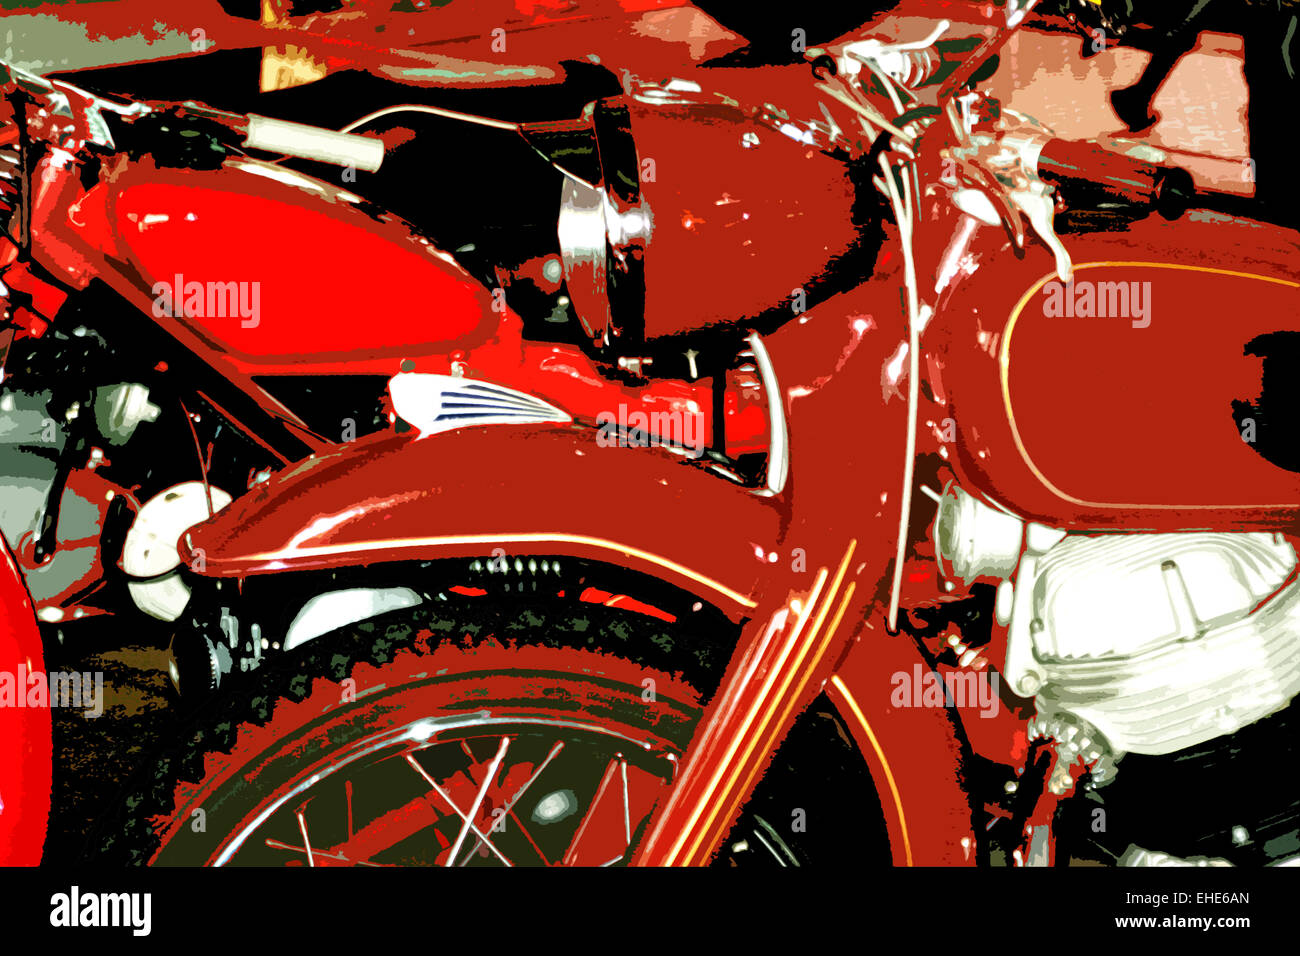 vintage oldtimer motorrad stockfoto bild 79602957 alamy. Black Bedroom Furniture Sets. Home Design Ideas